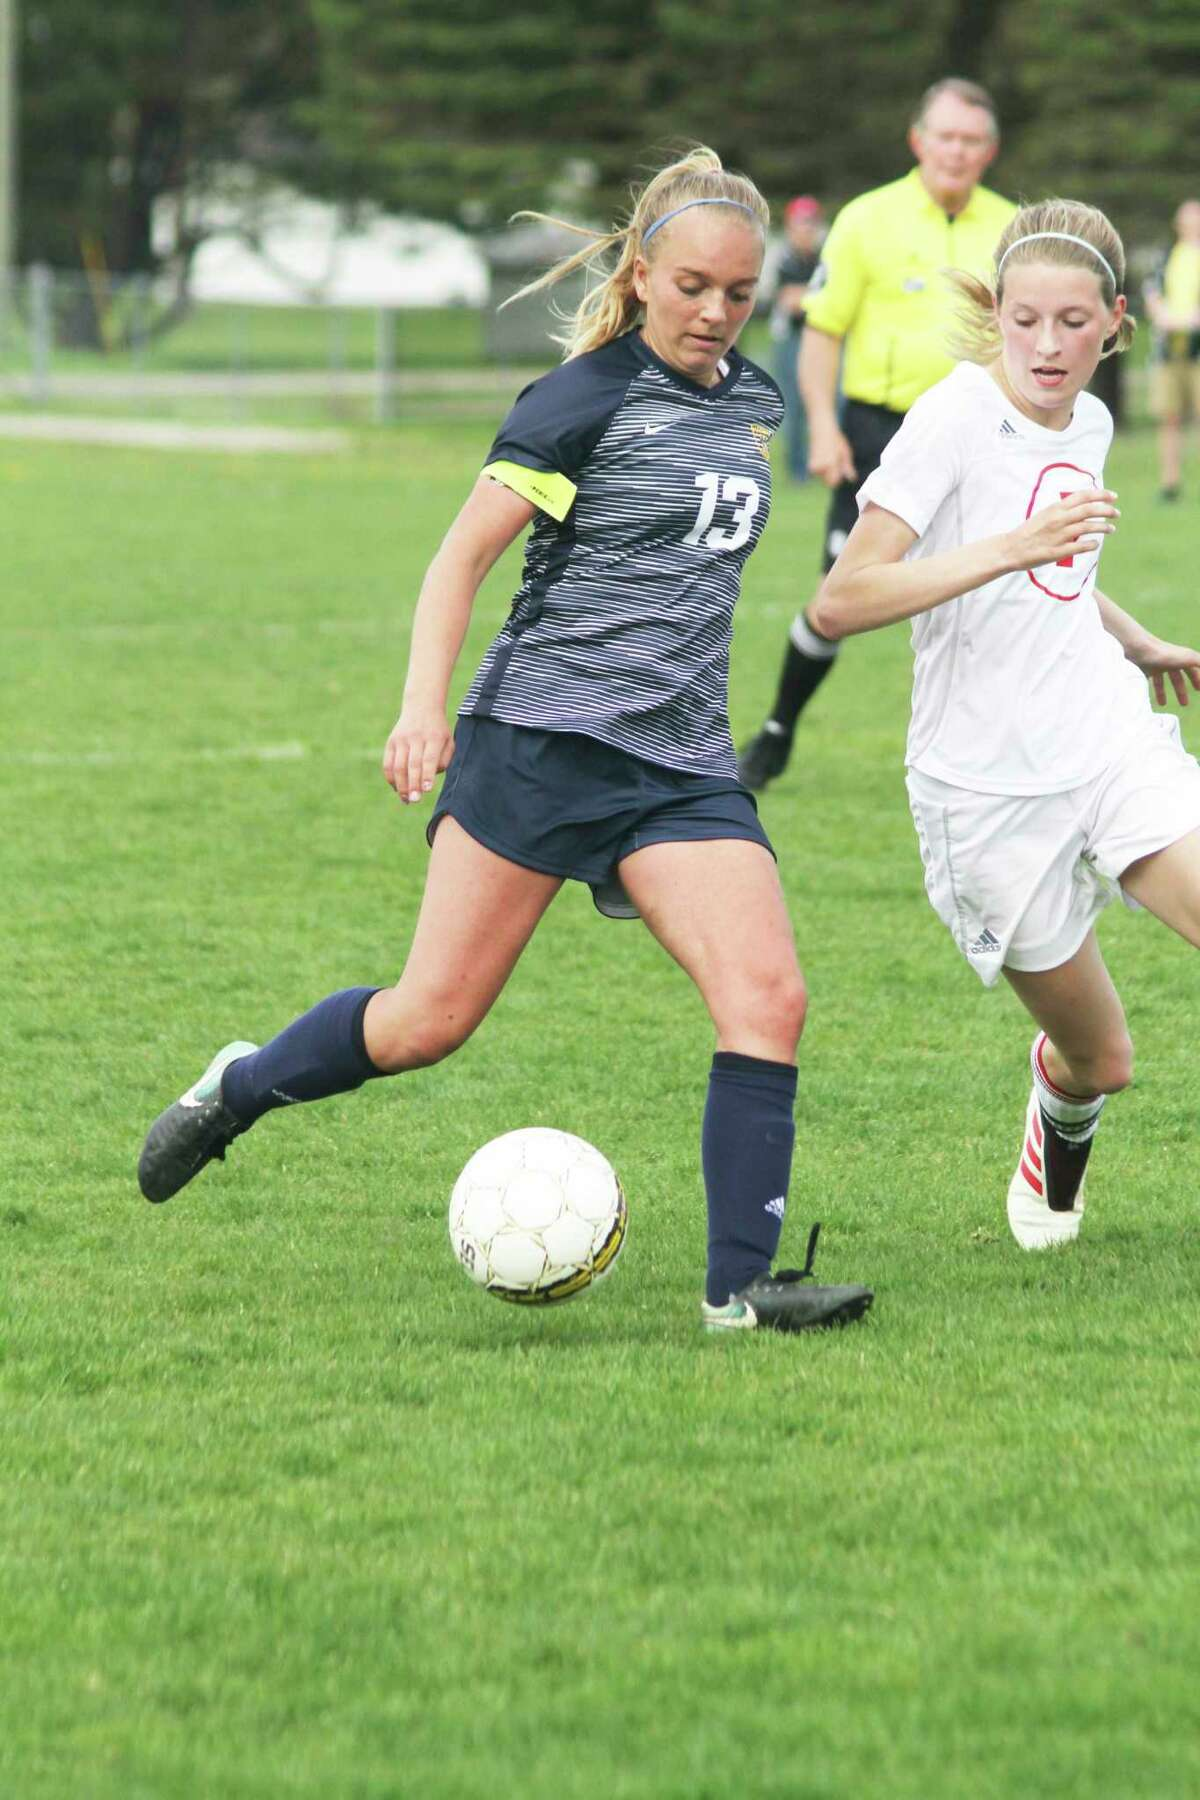 Manistee's Olivia Smith will return to the pitch this season for the Chippewas. (News Advocate file photo)